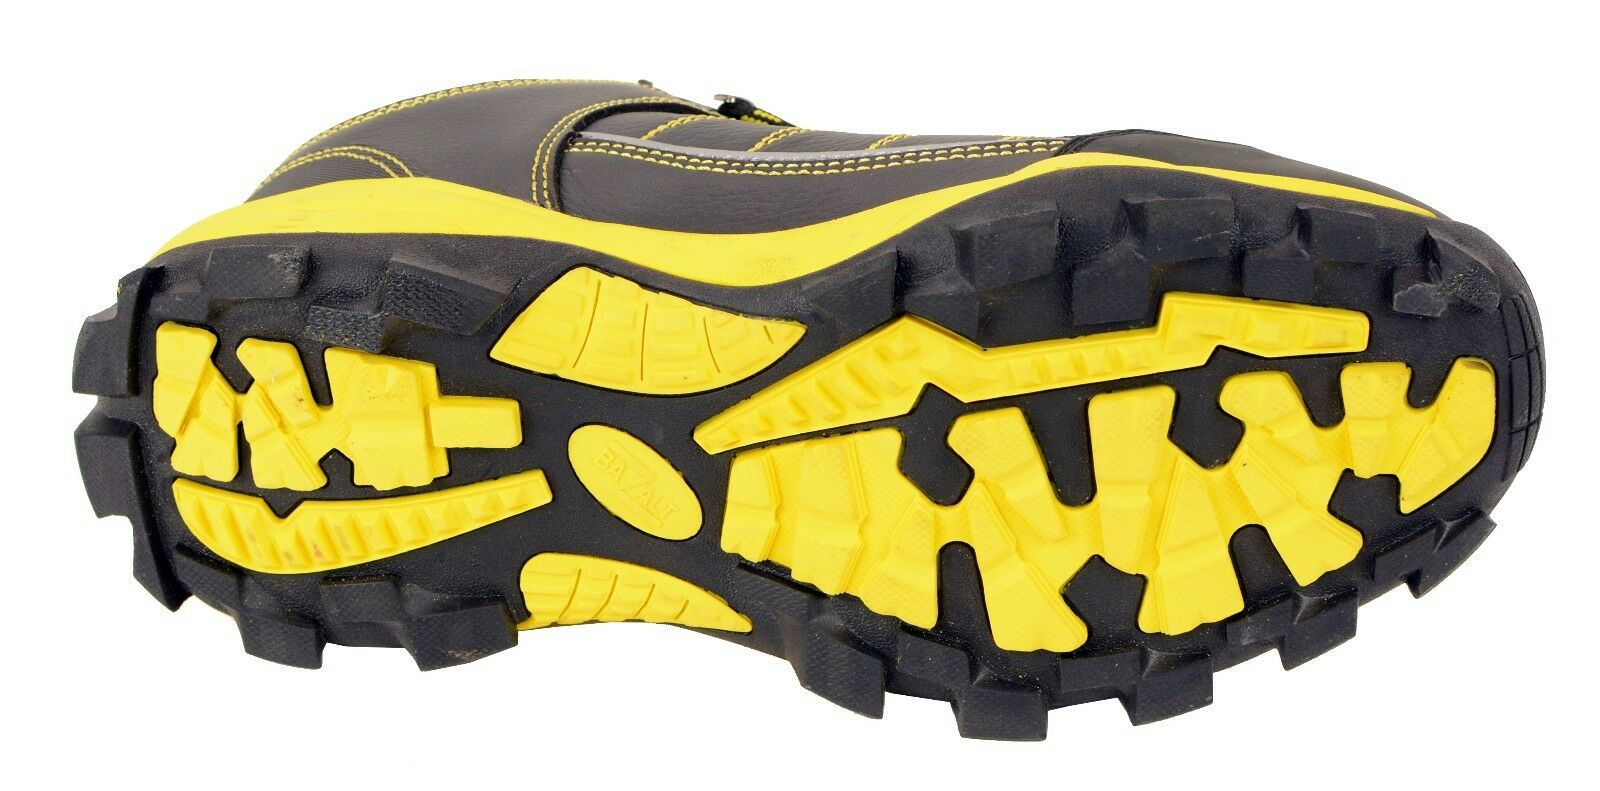 9640a6d5423 ... Men's Black Black Black & Yellow Water/Frost Proof Leather Shoe W/  Reflective Trim ...